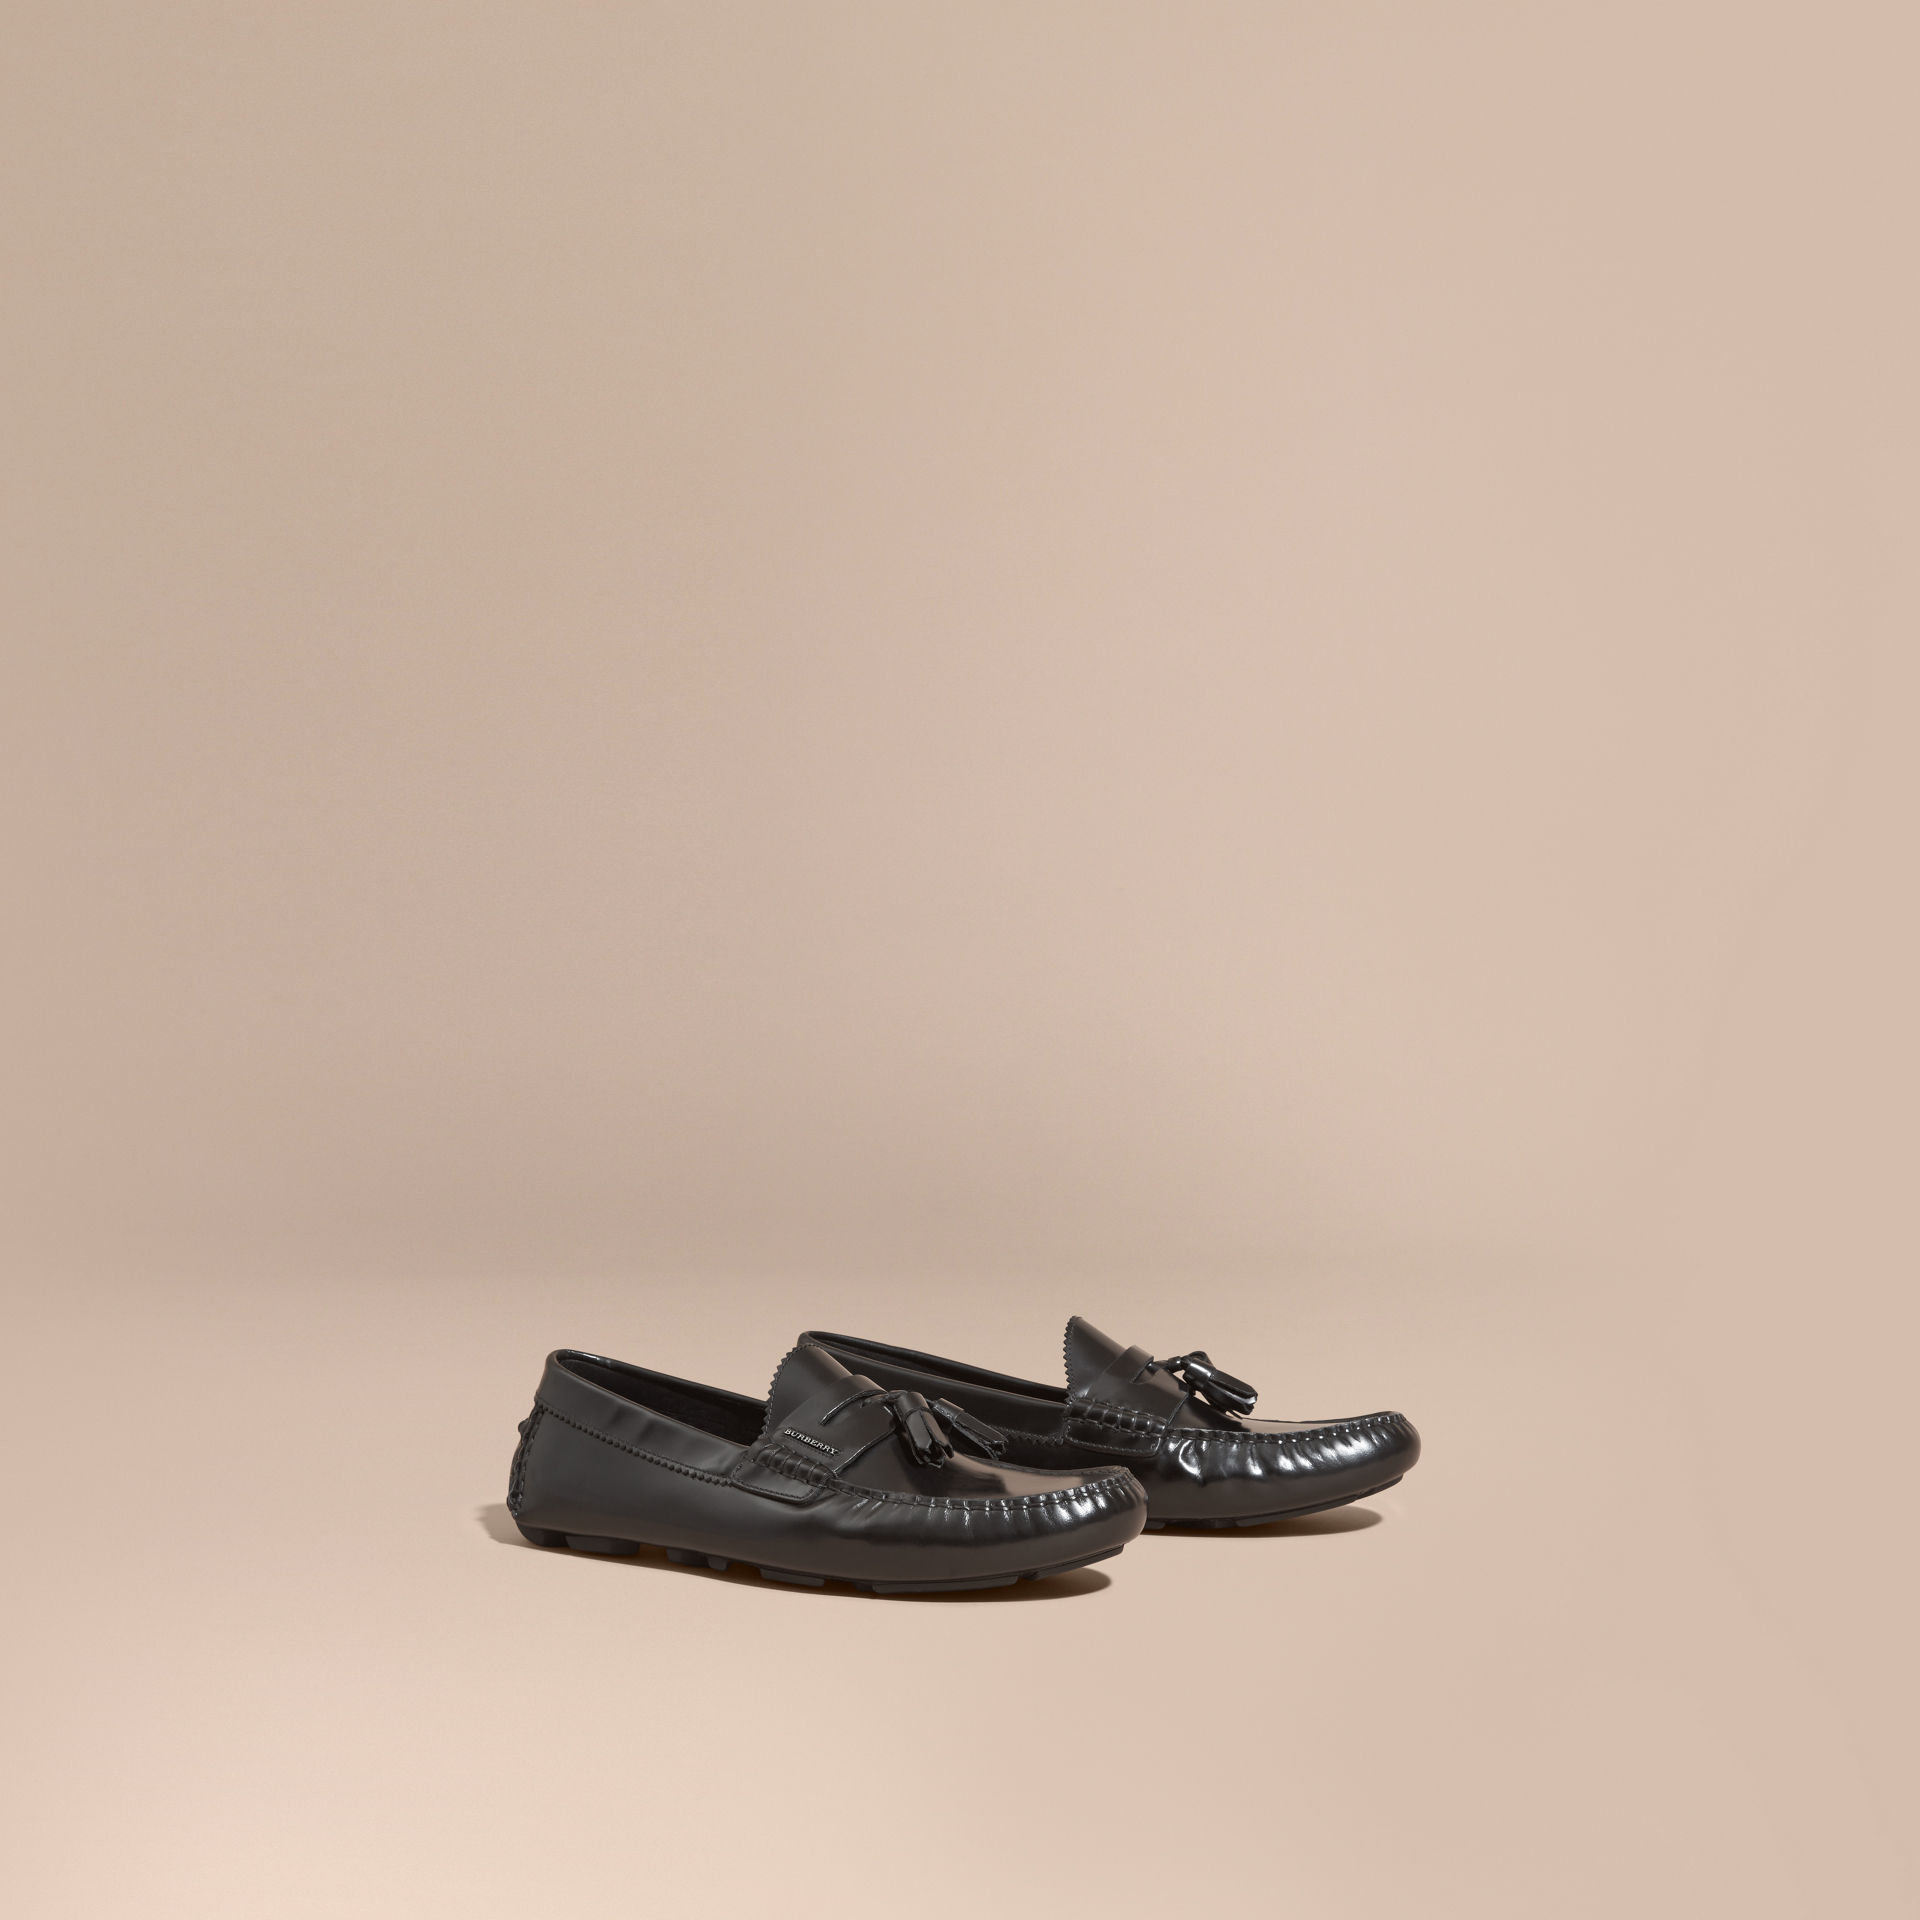 Burberry Black Tasselled Polished Leather Loafers